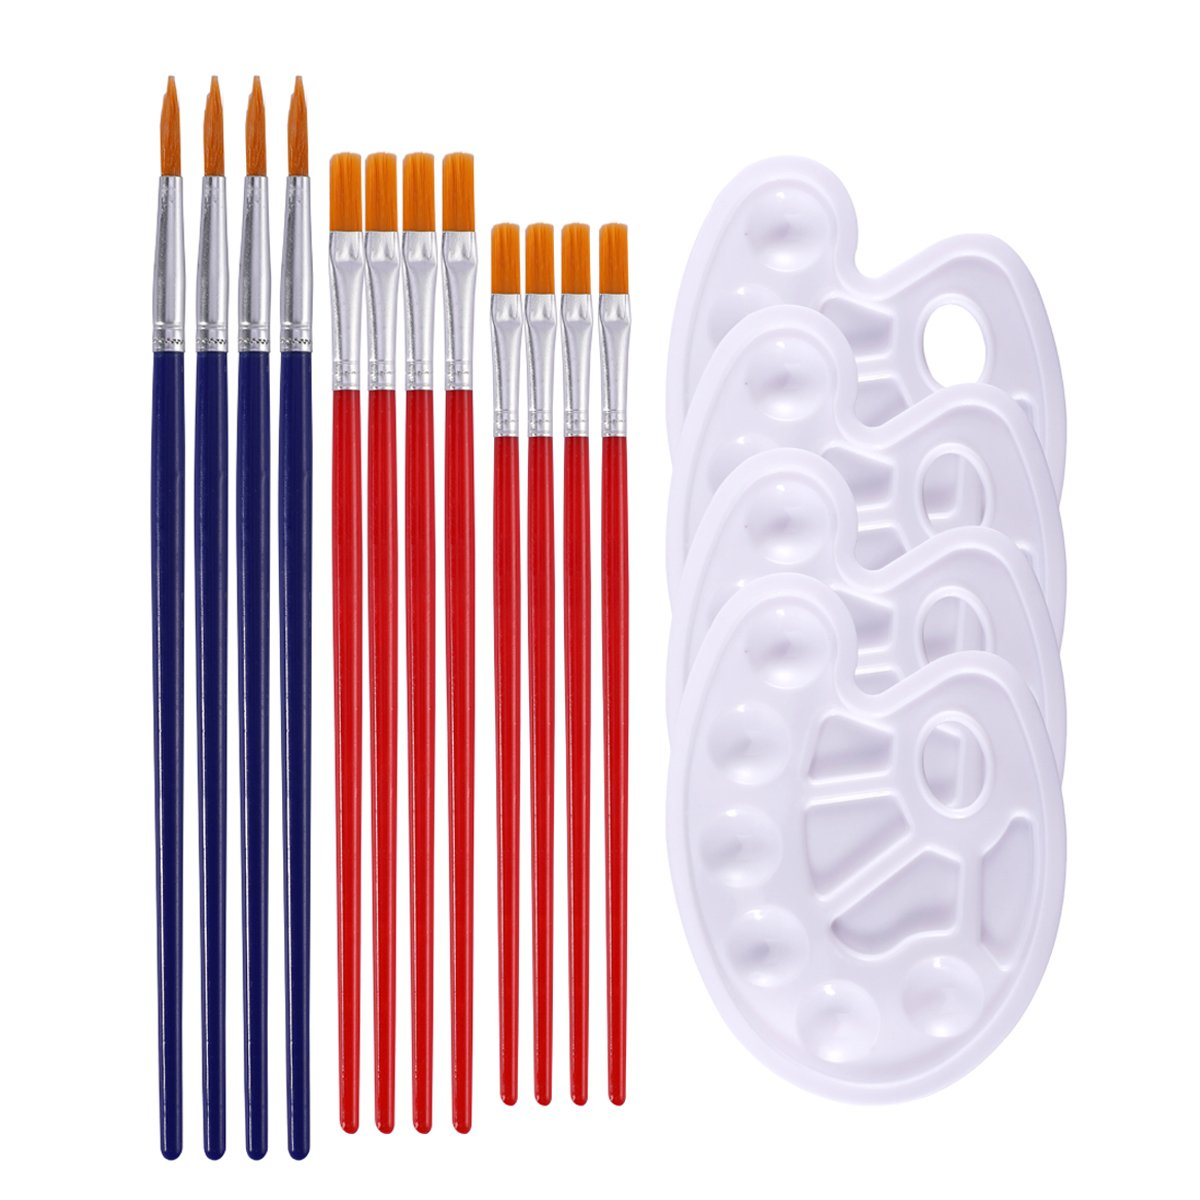 Paint Brushes,Art Paintbrush Sets,12 pcs Nylon Hair Paint Brushes for Acrylic Oil Watercolor Painting and 4 pcs Paint Trays Paint Tray Palette for Kids DIY Crafts